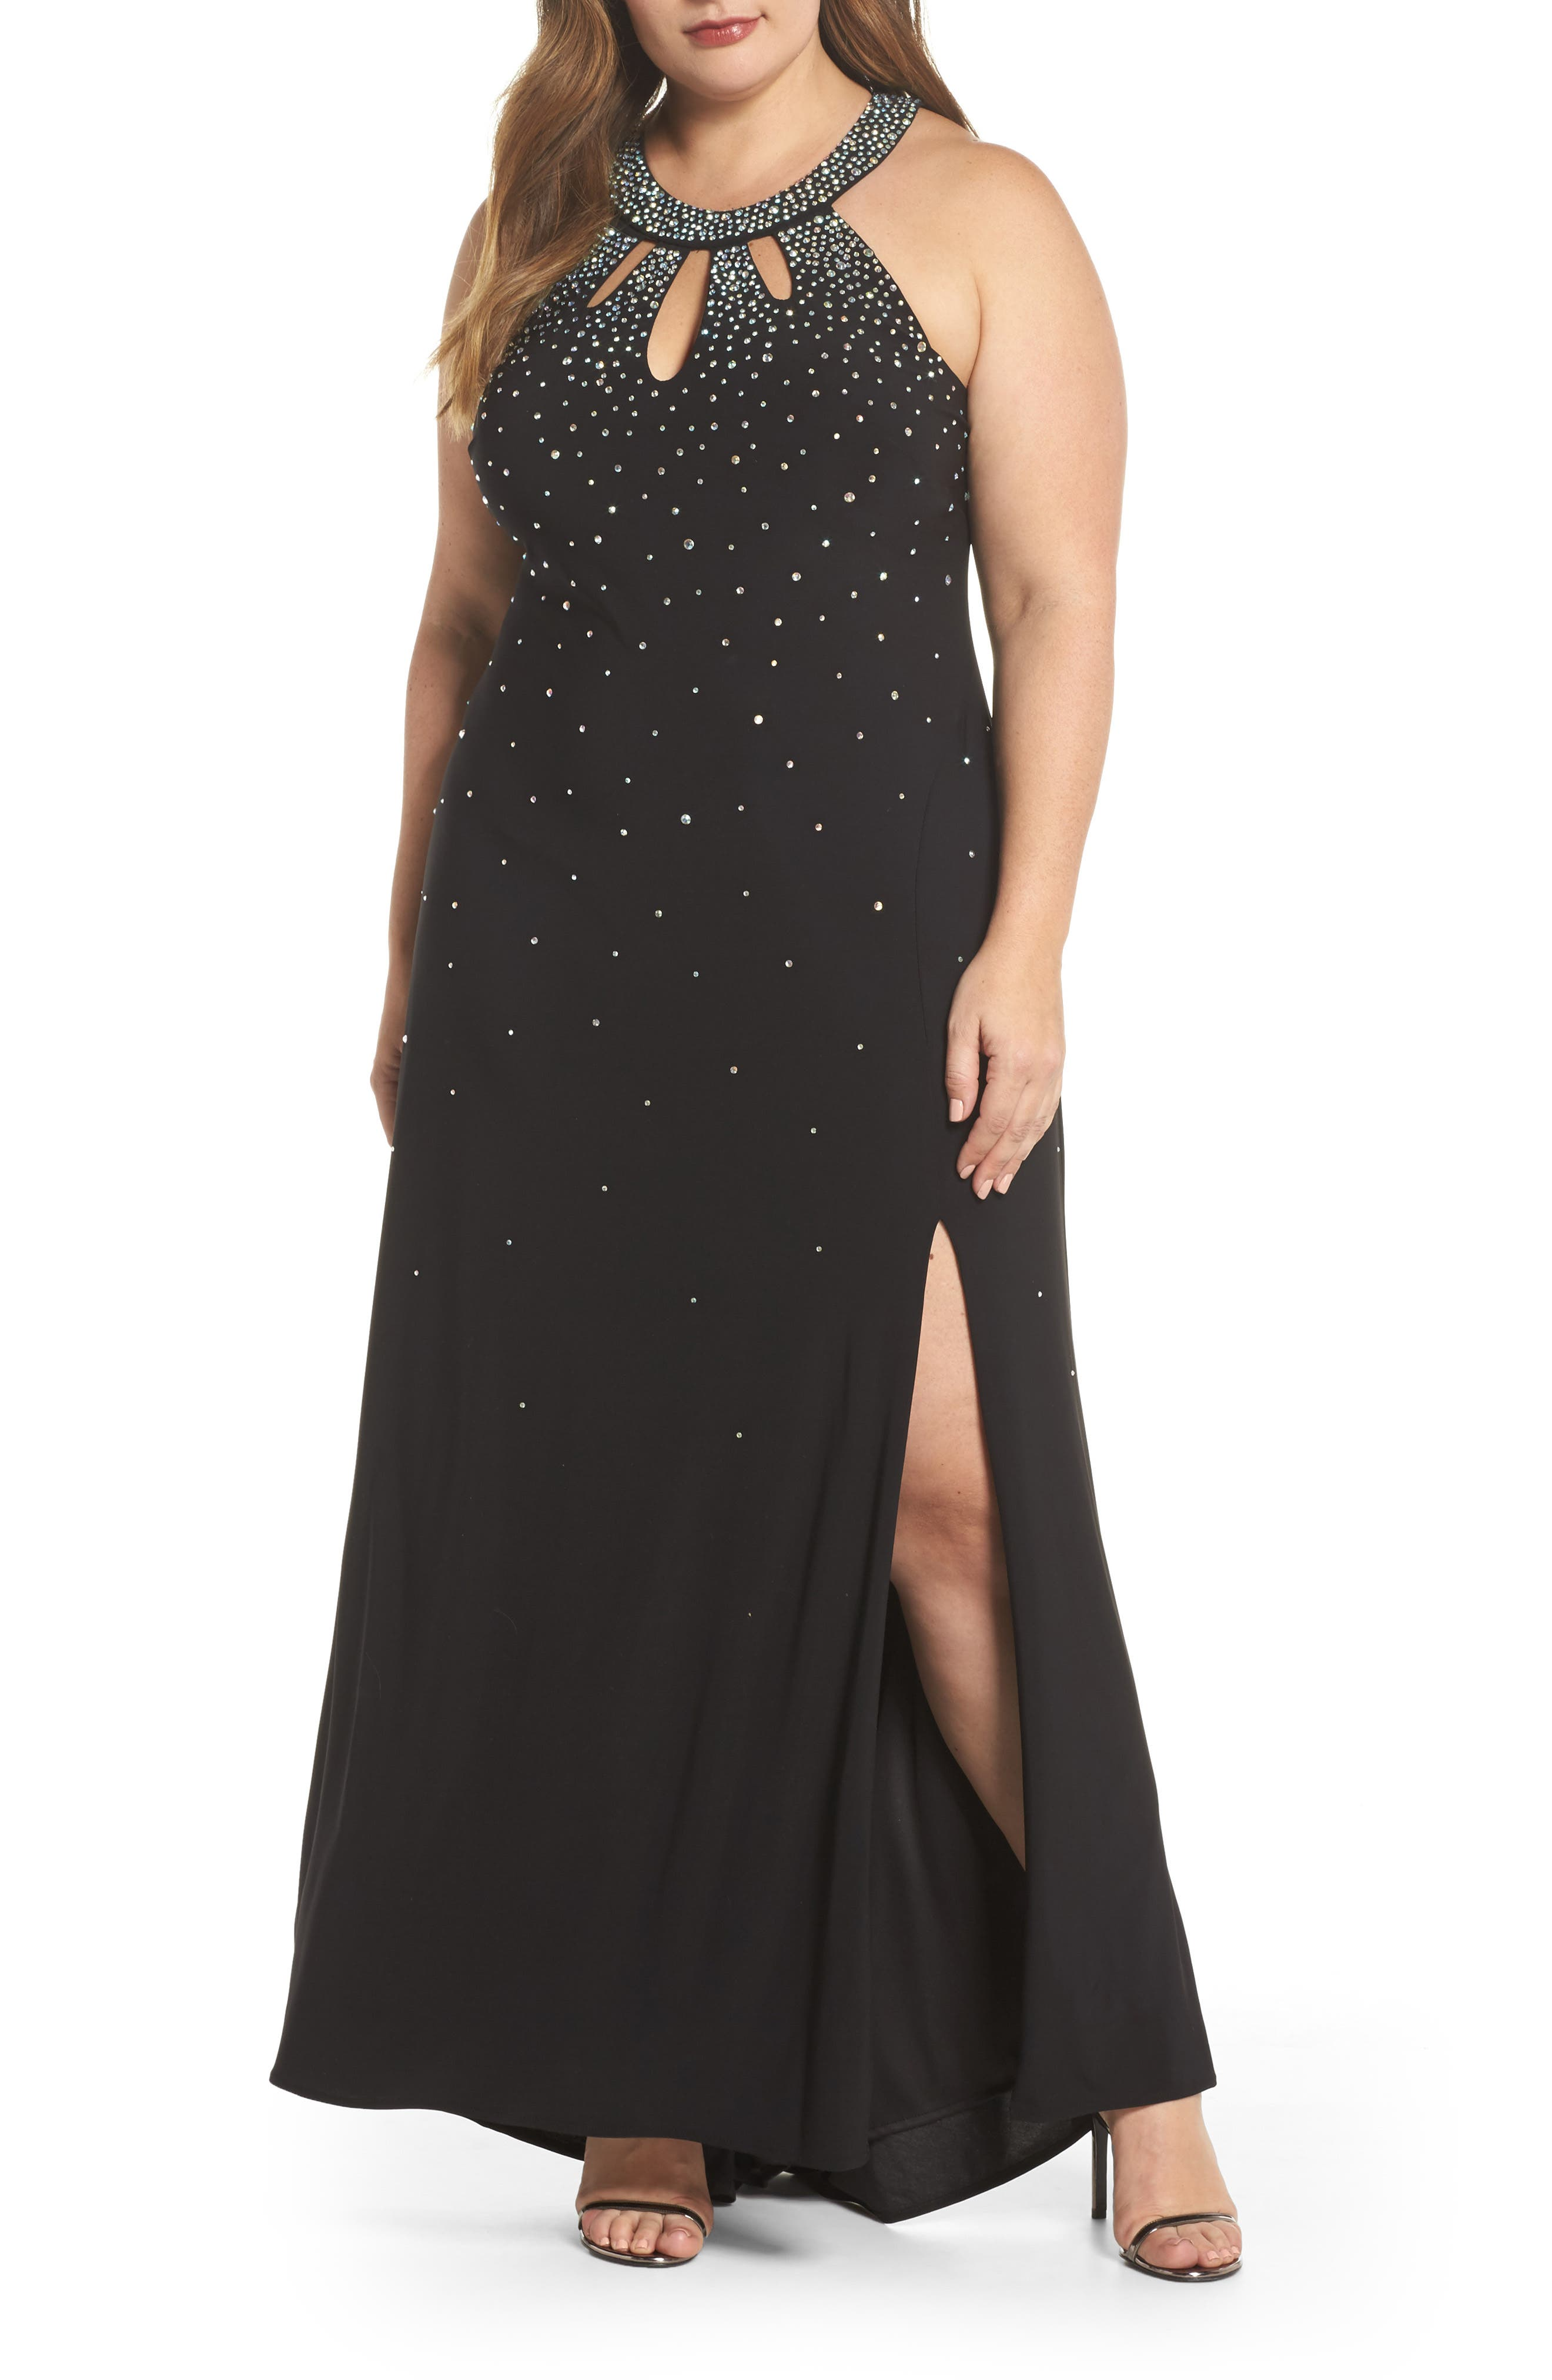 Heat Sealed Stone Knit Gown,                             Main thumbnail 1, color,                             Black